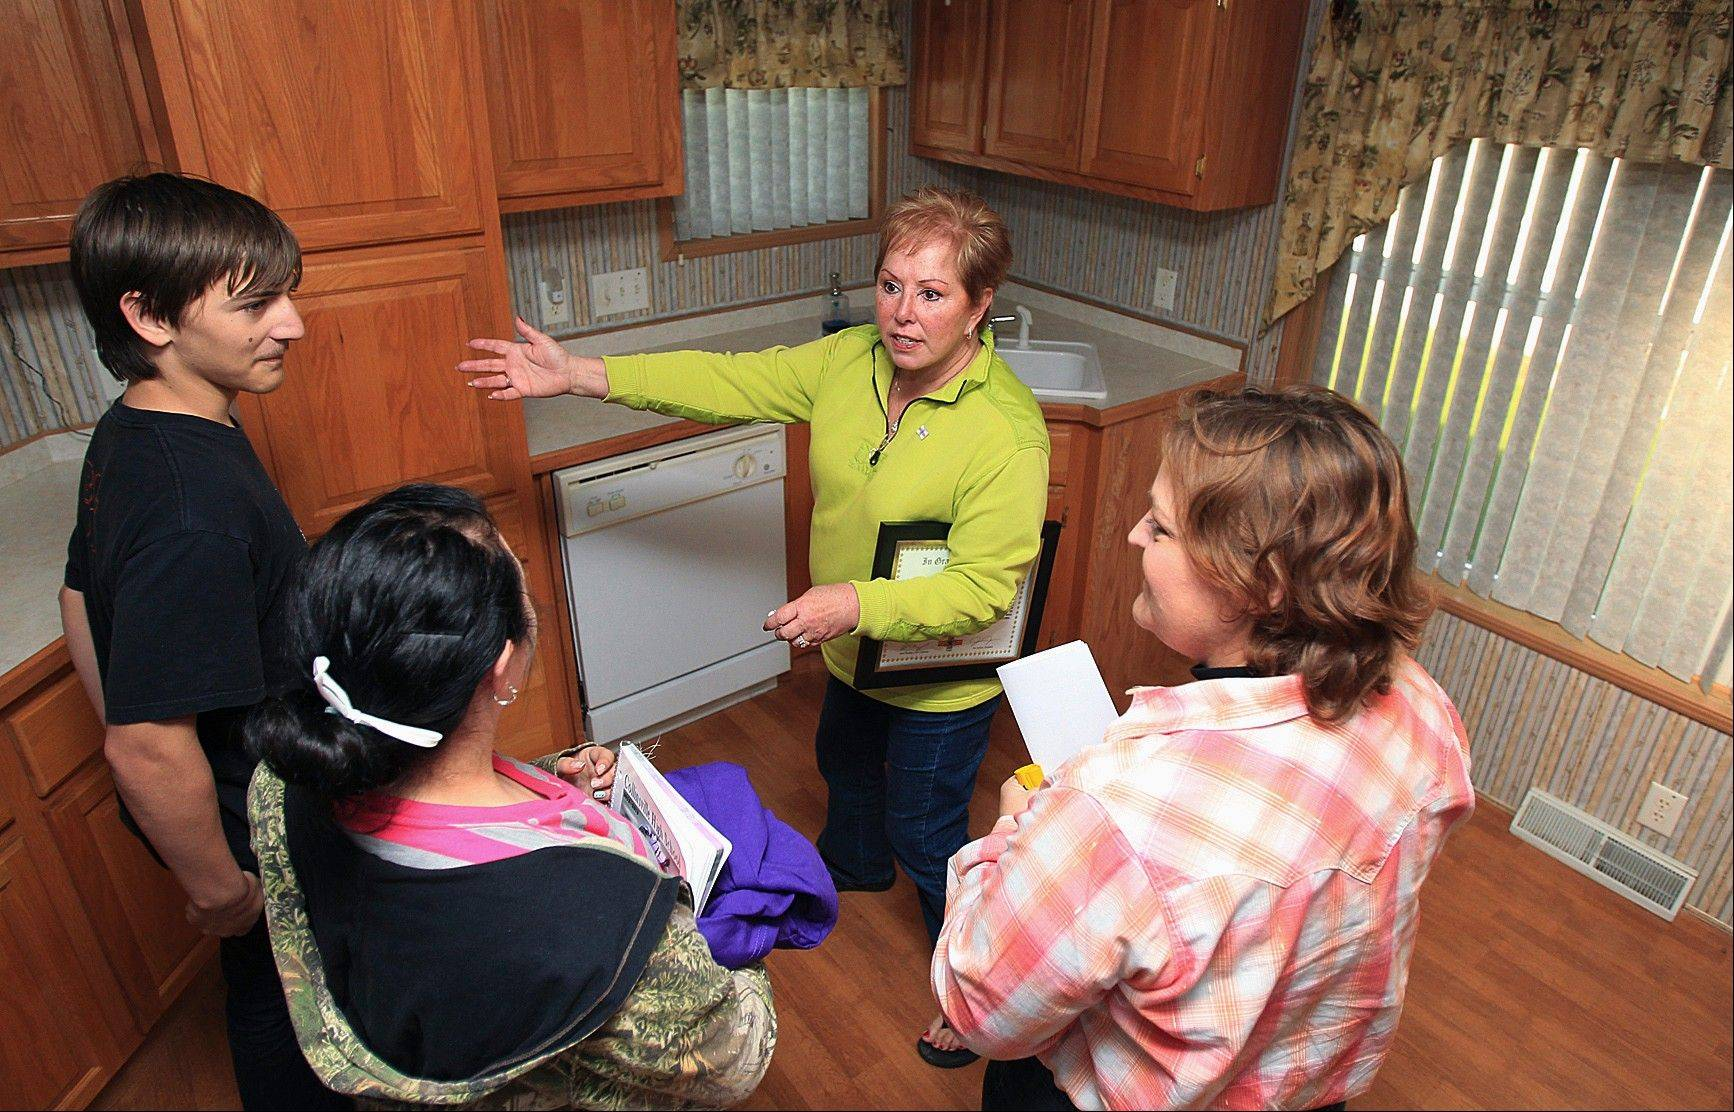 Associated Press  Anita Johnson gives a tour of a home she and her husband, Earl, donated to the Walter family in Collinsville